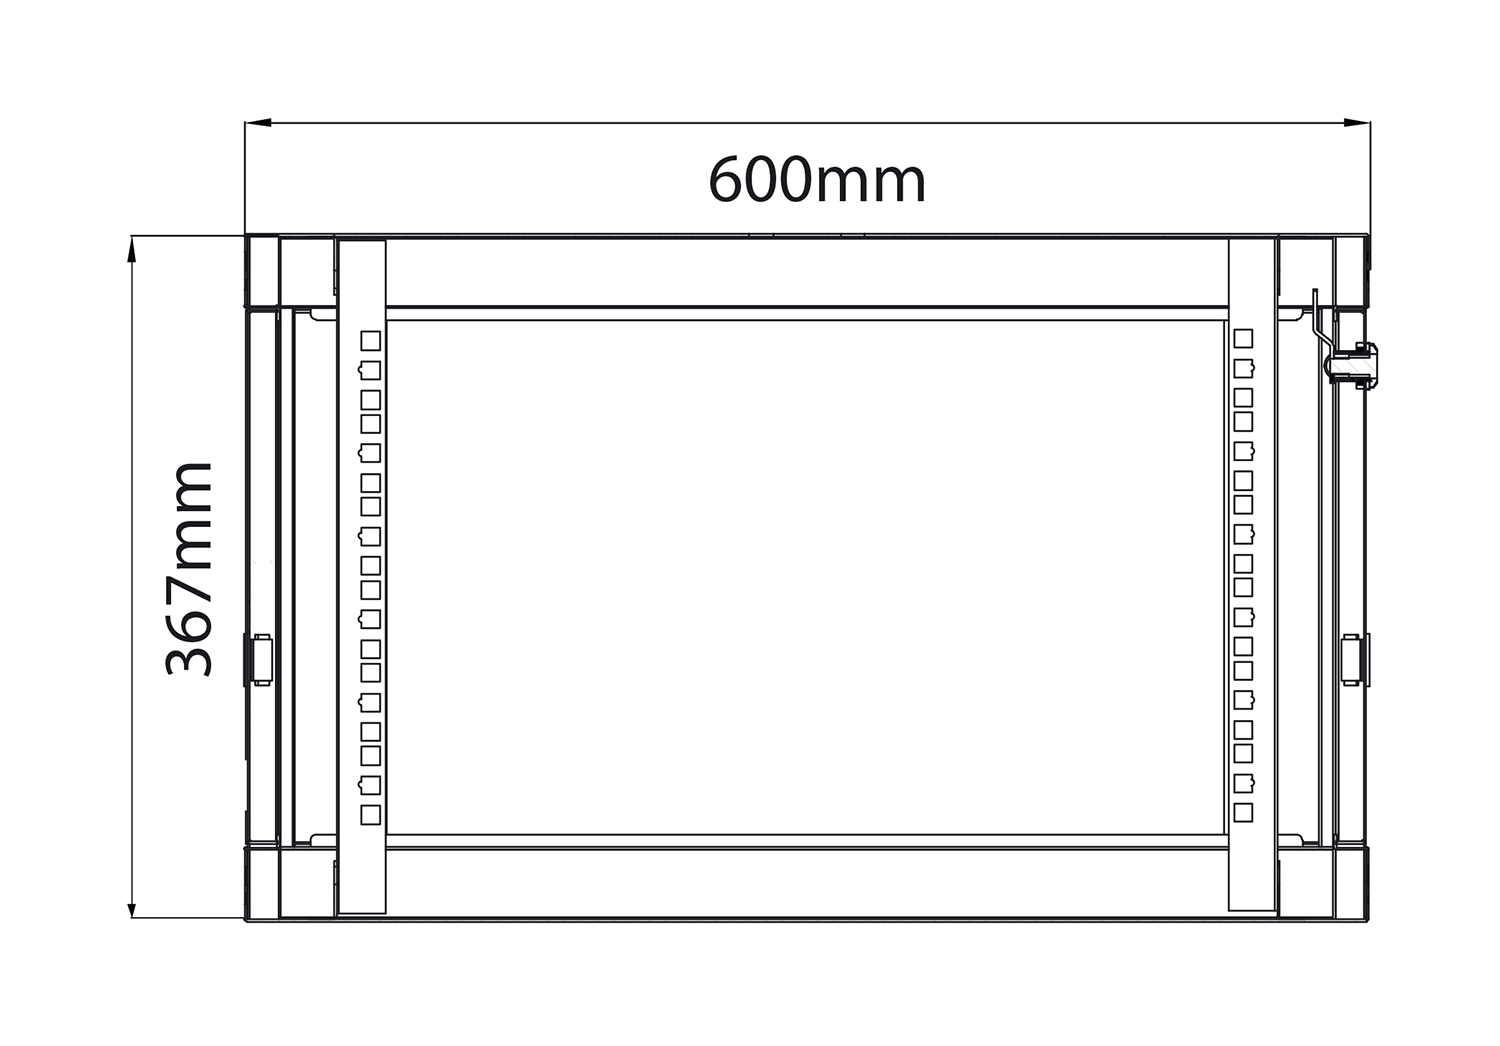 19″ Rack Εξοπλισμού 6U x 450mm Deep RC6U450